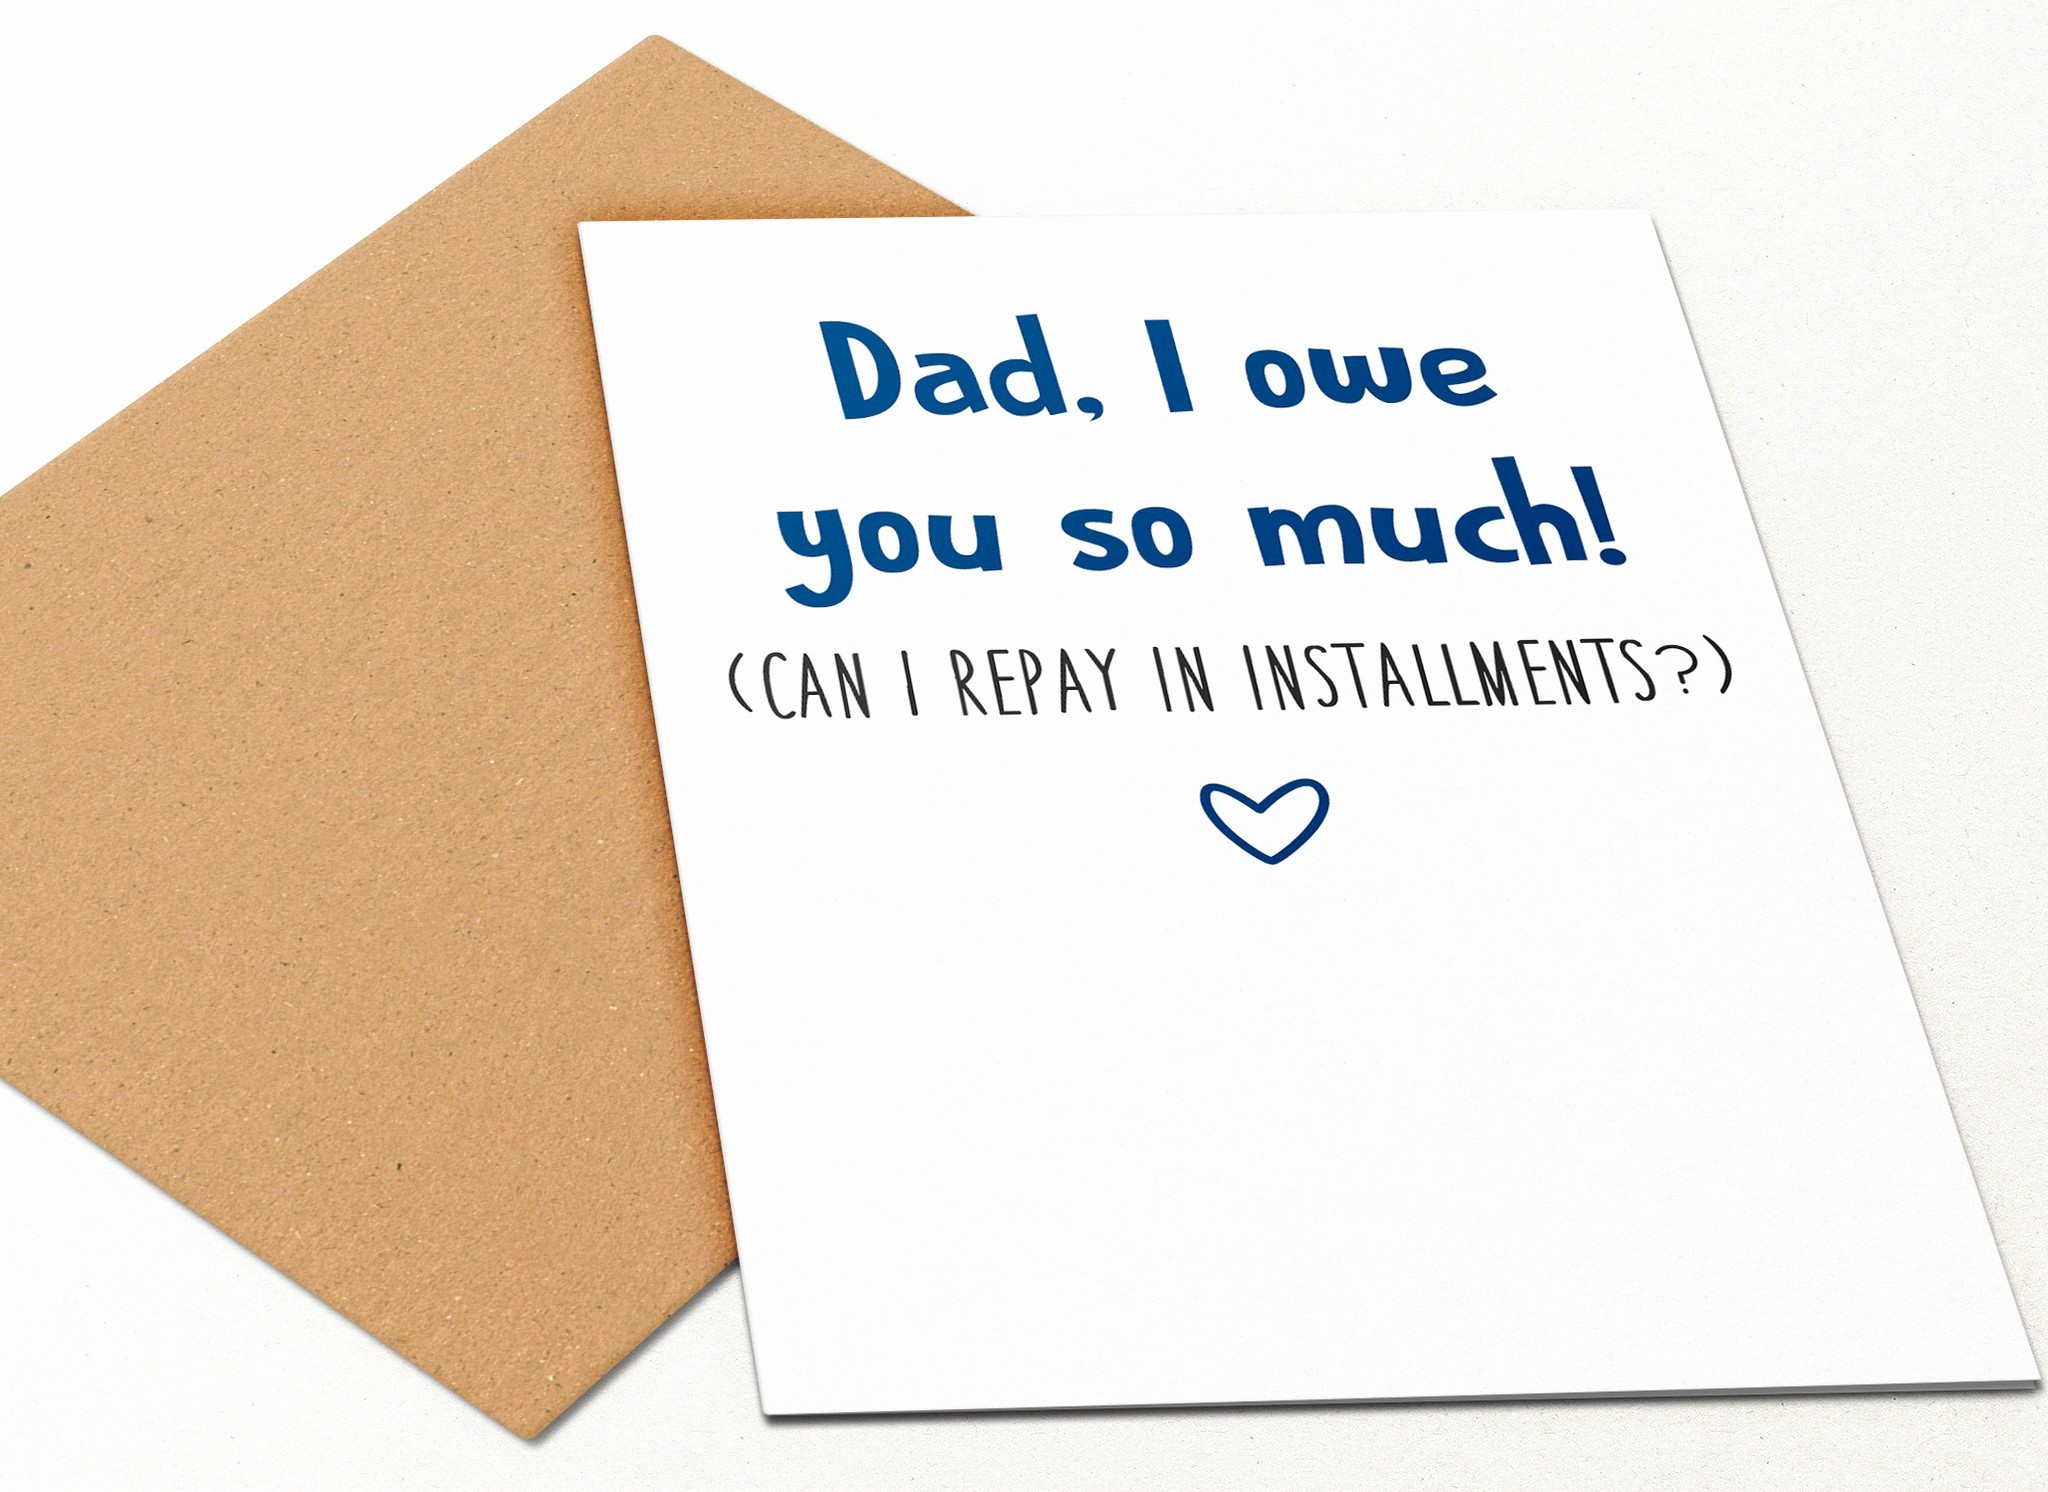 I Owe You Gift Certificate Inspirational Dad I Owe You so Much – Oh Flora